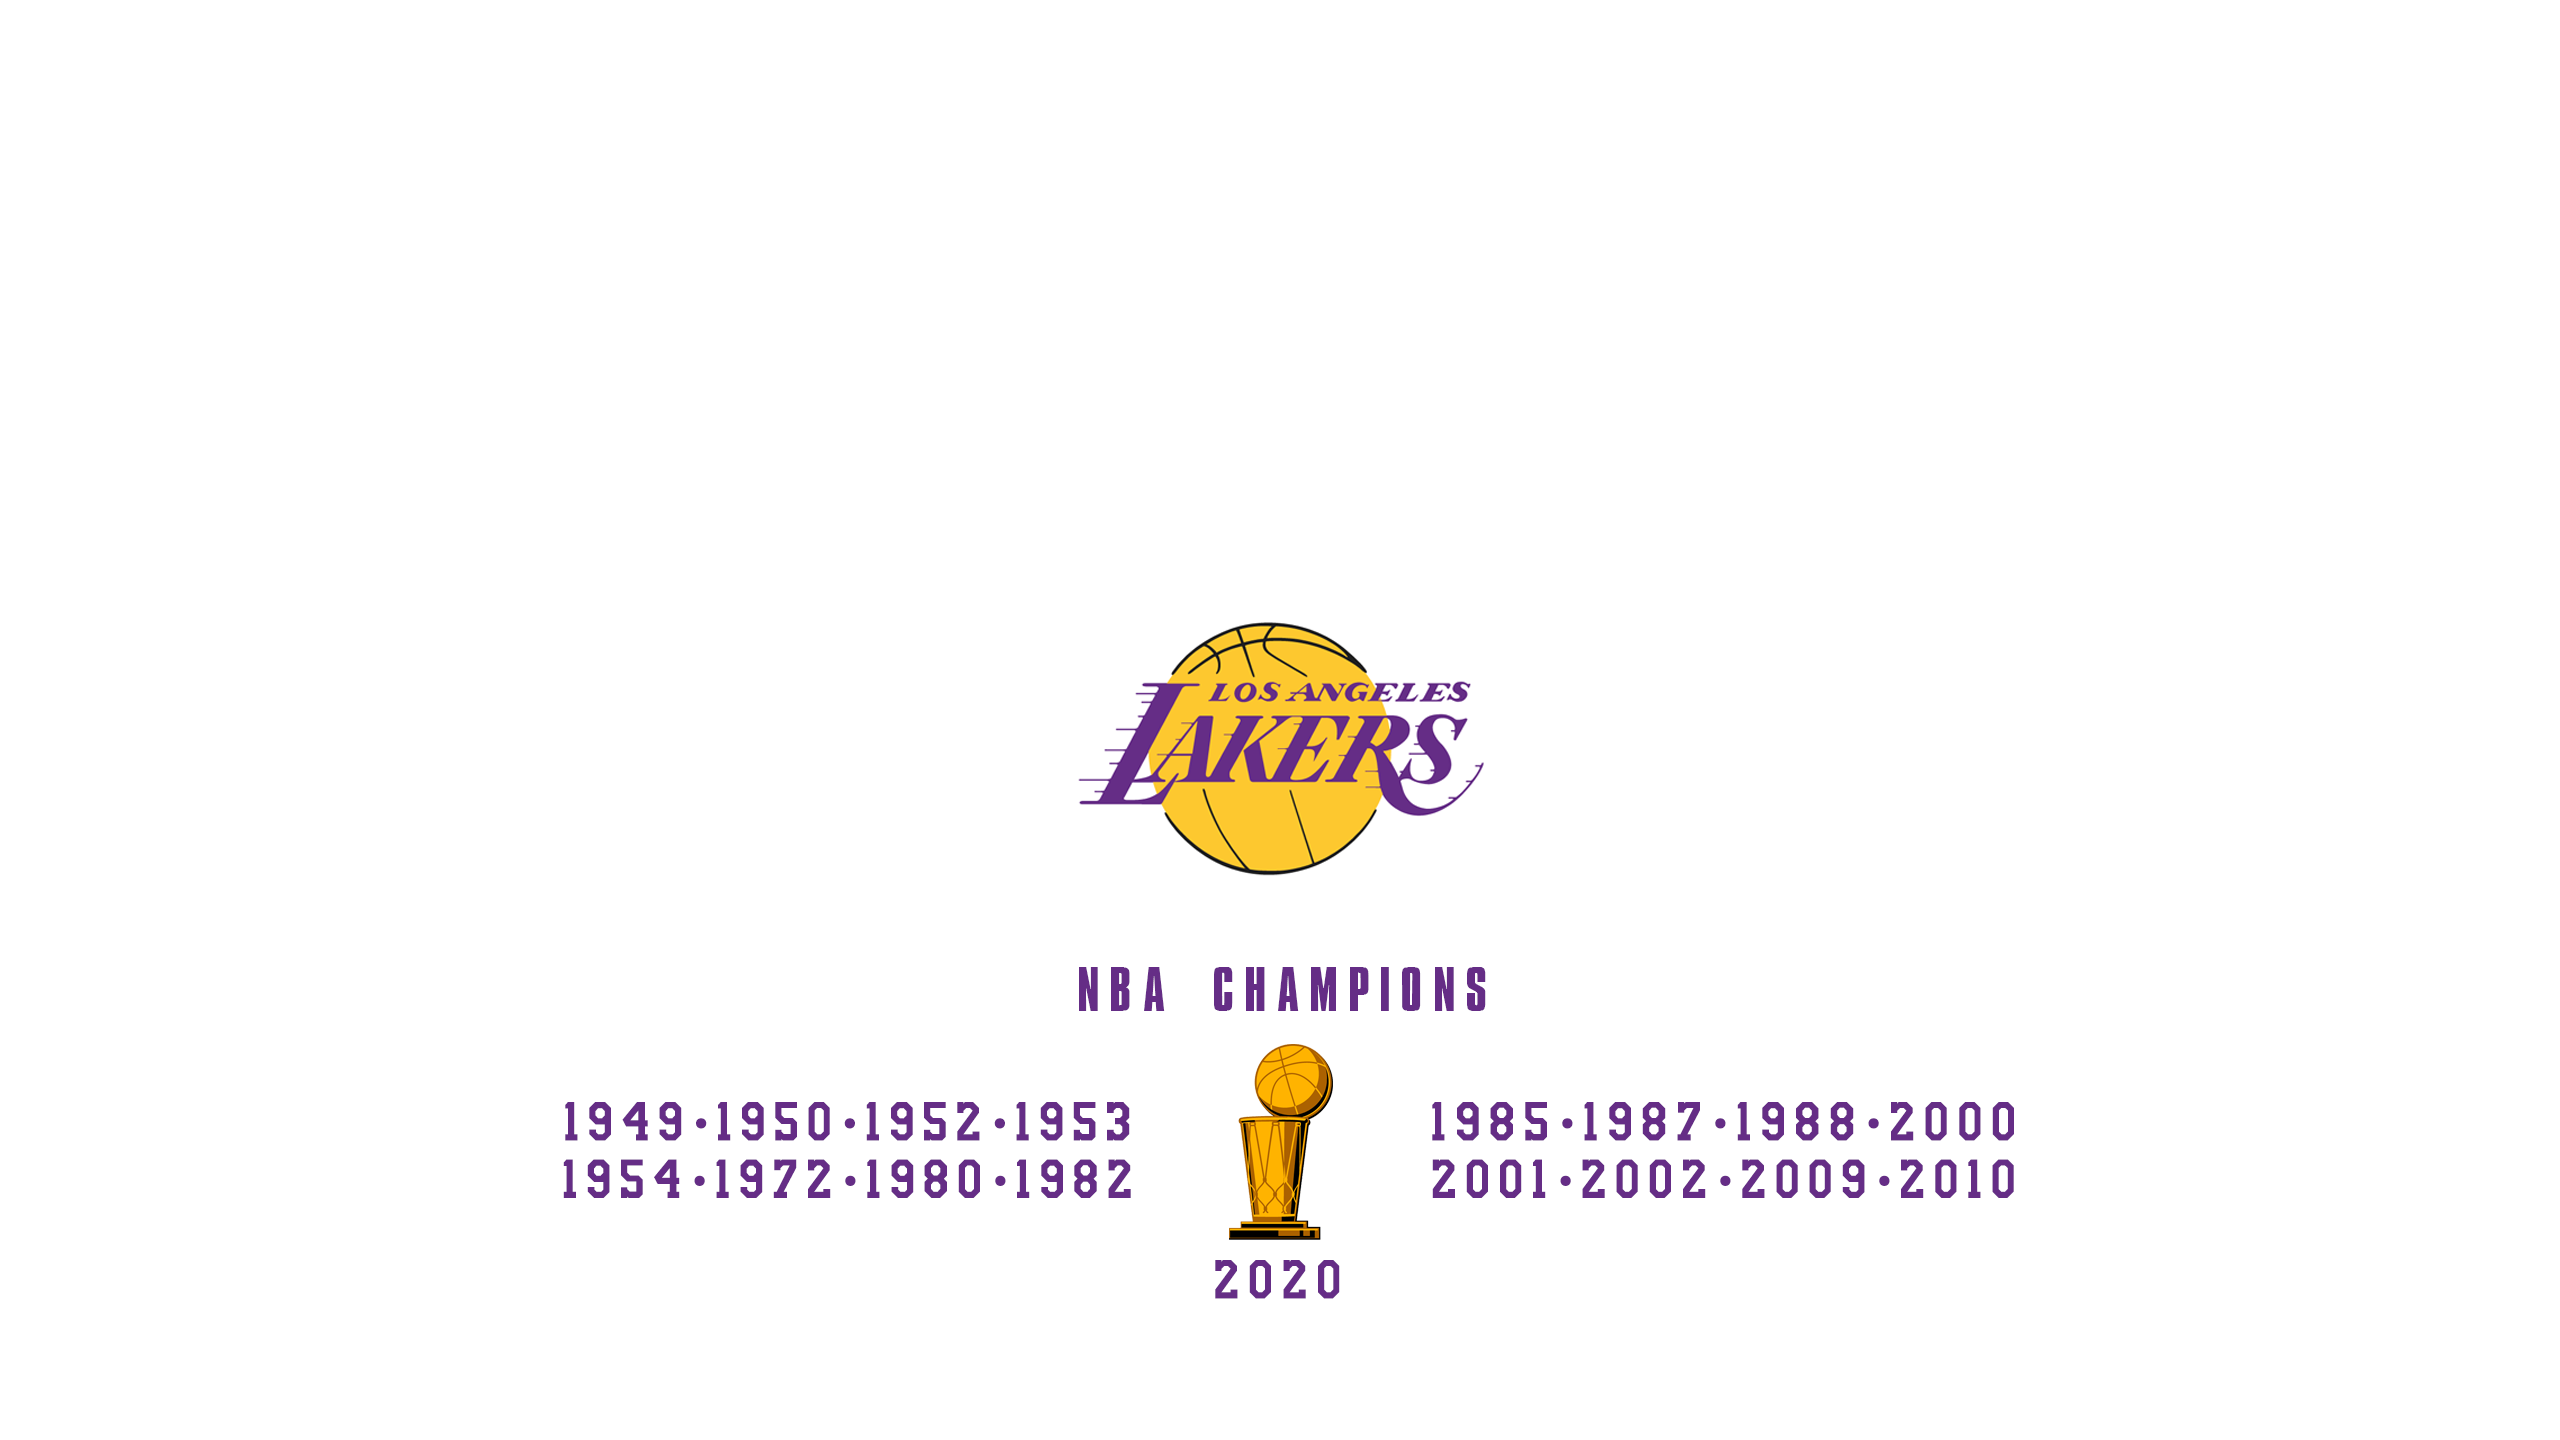 Los Angeles Lakers - NBA Champs